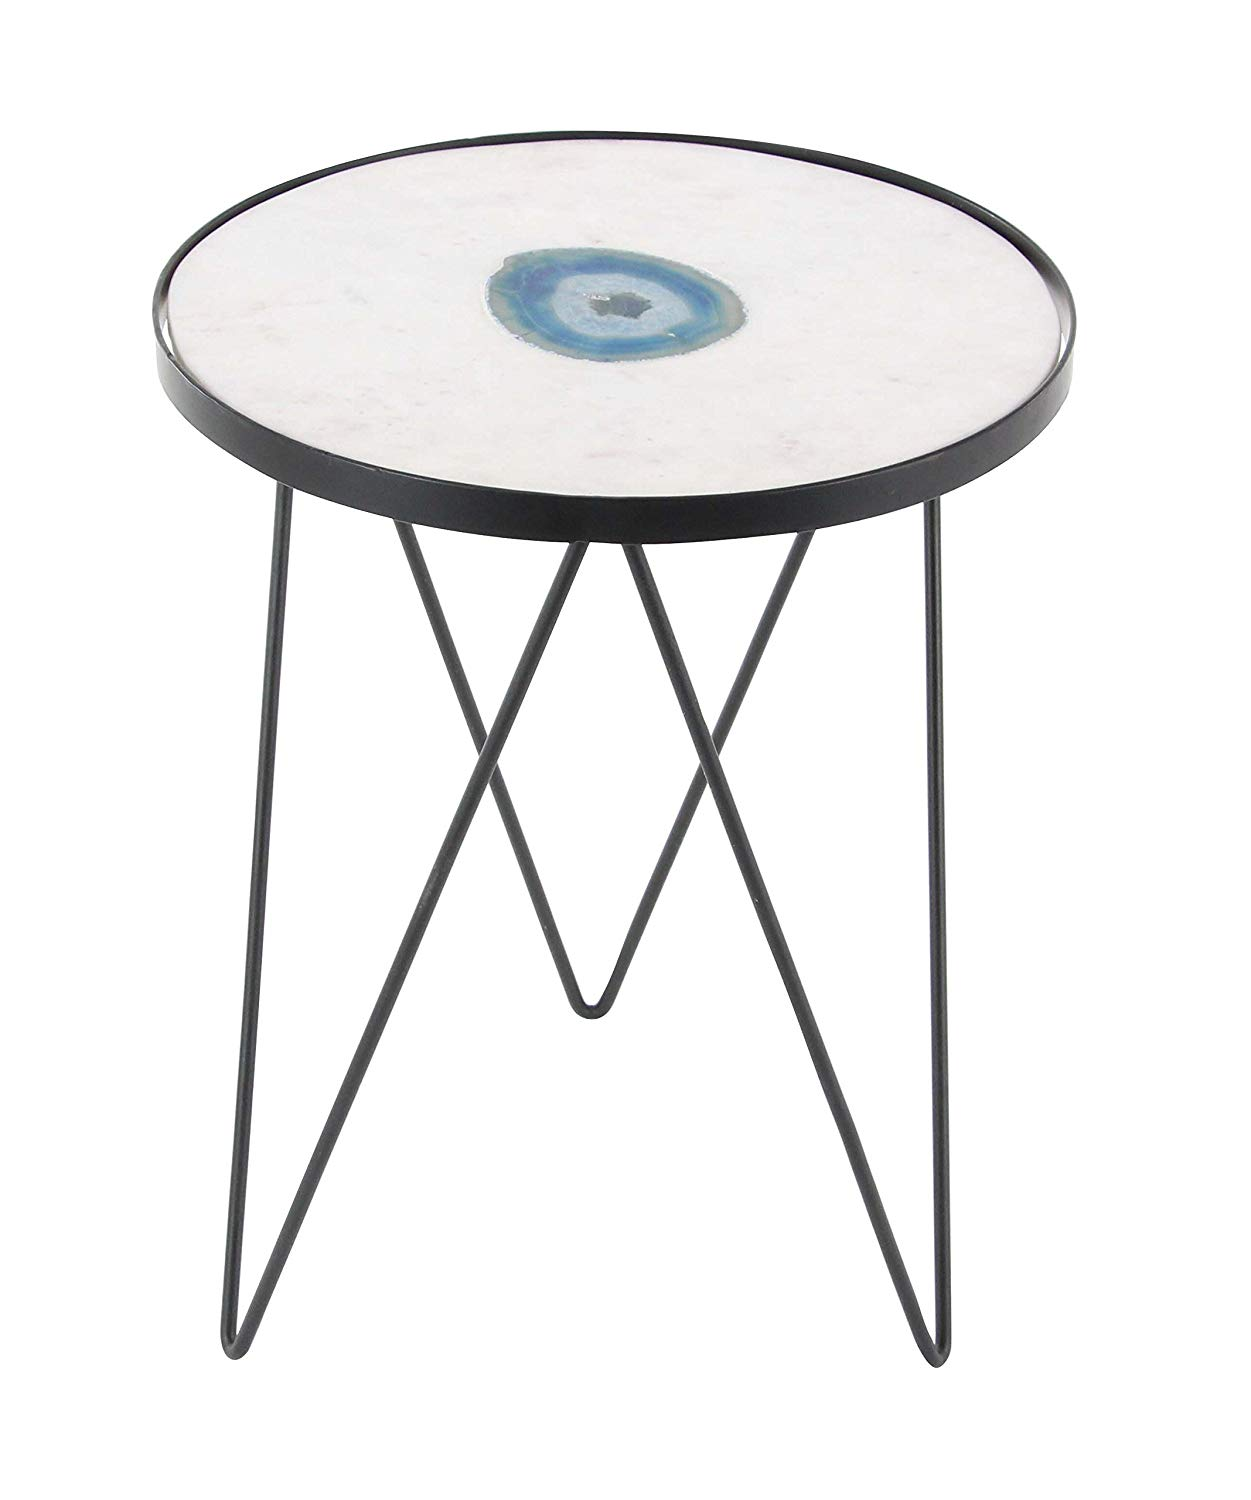 charming white marble and metal round accent table small for faux tablecloth pedestal wooden unfinished wood ideas covers decorating threshold side black full size ceramic outdoor